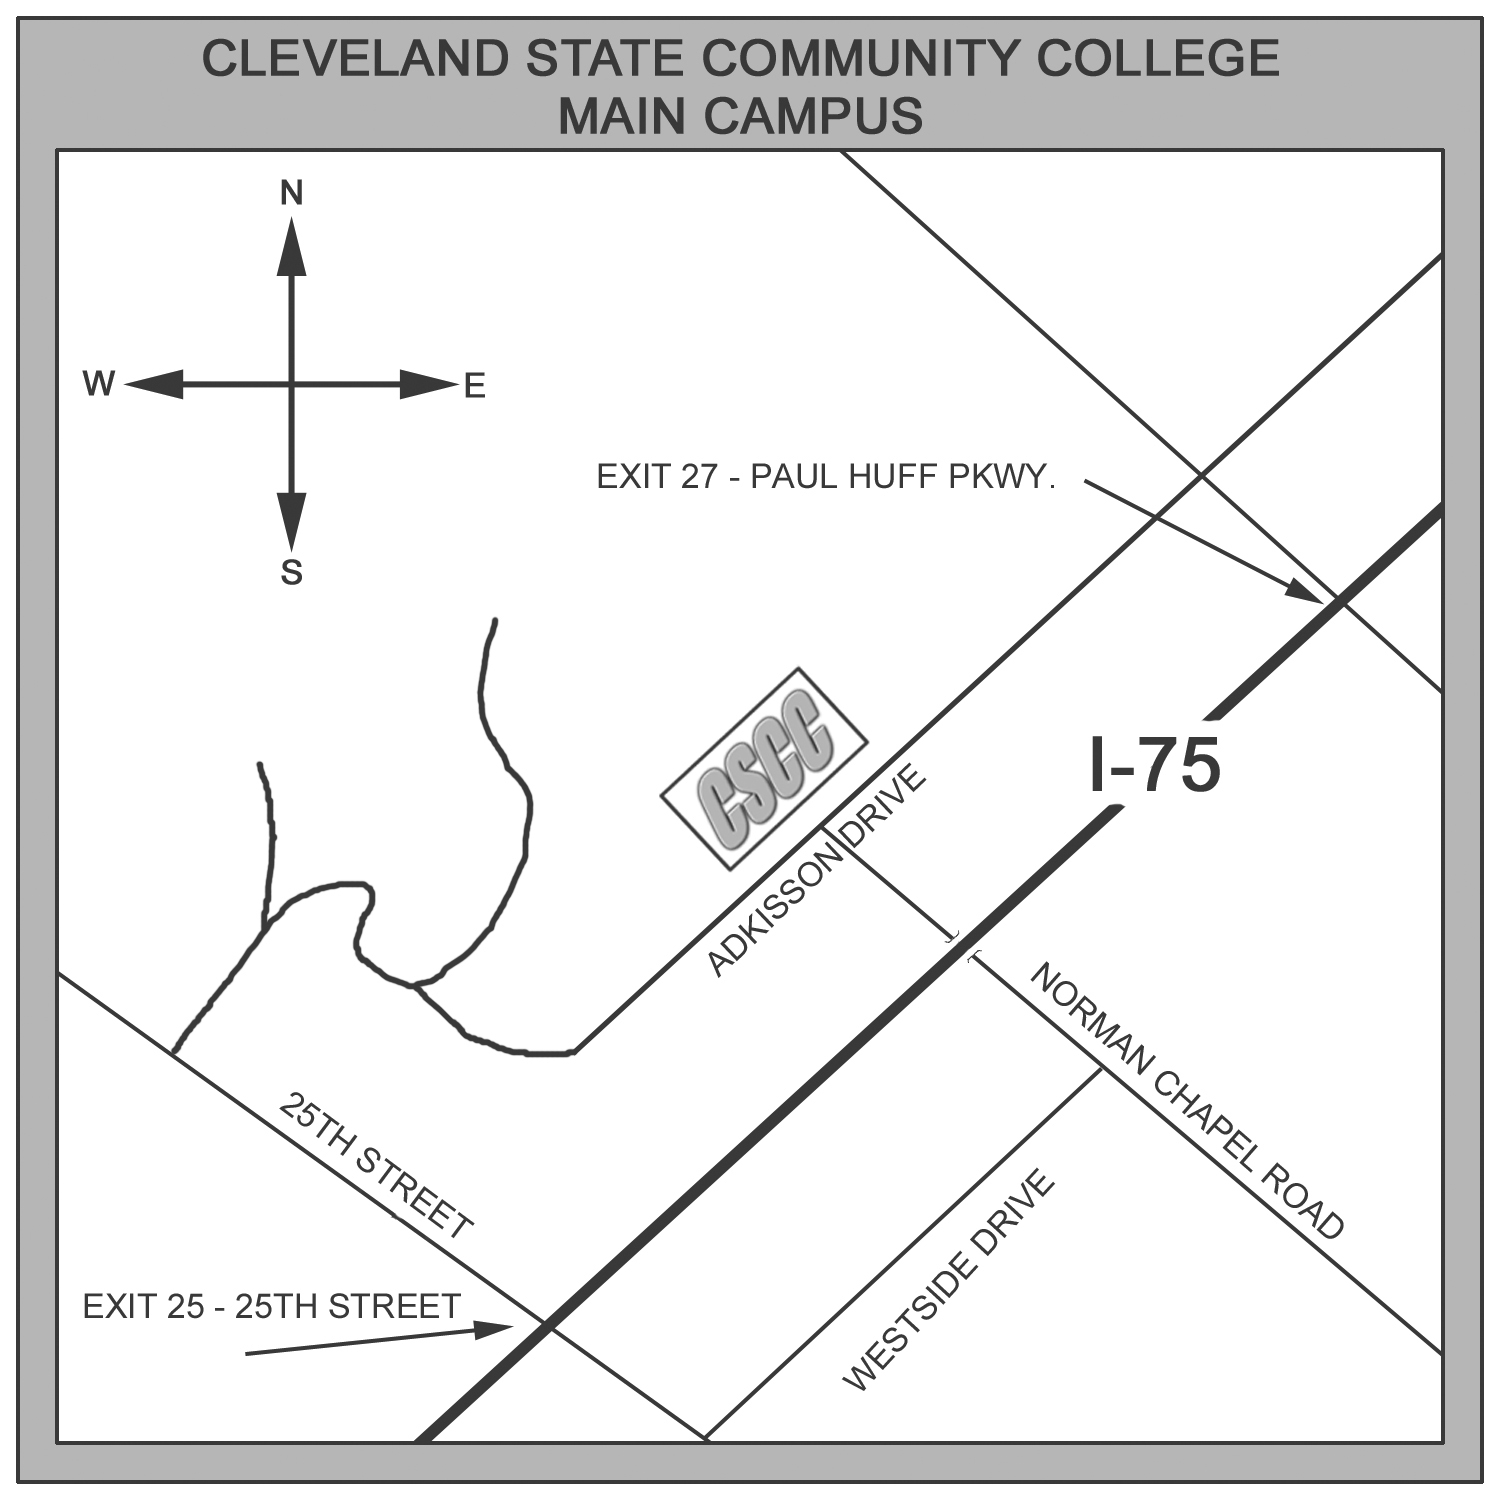 Campus Maps Cleveland State Community College Acalog Acms